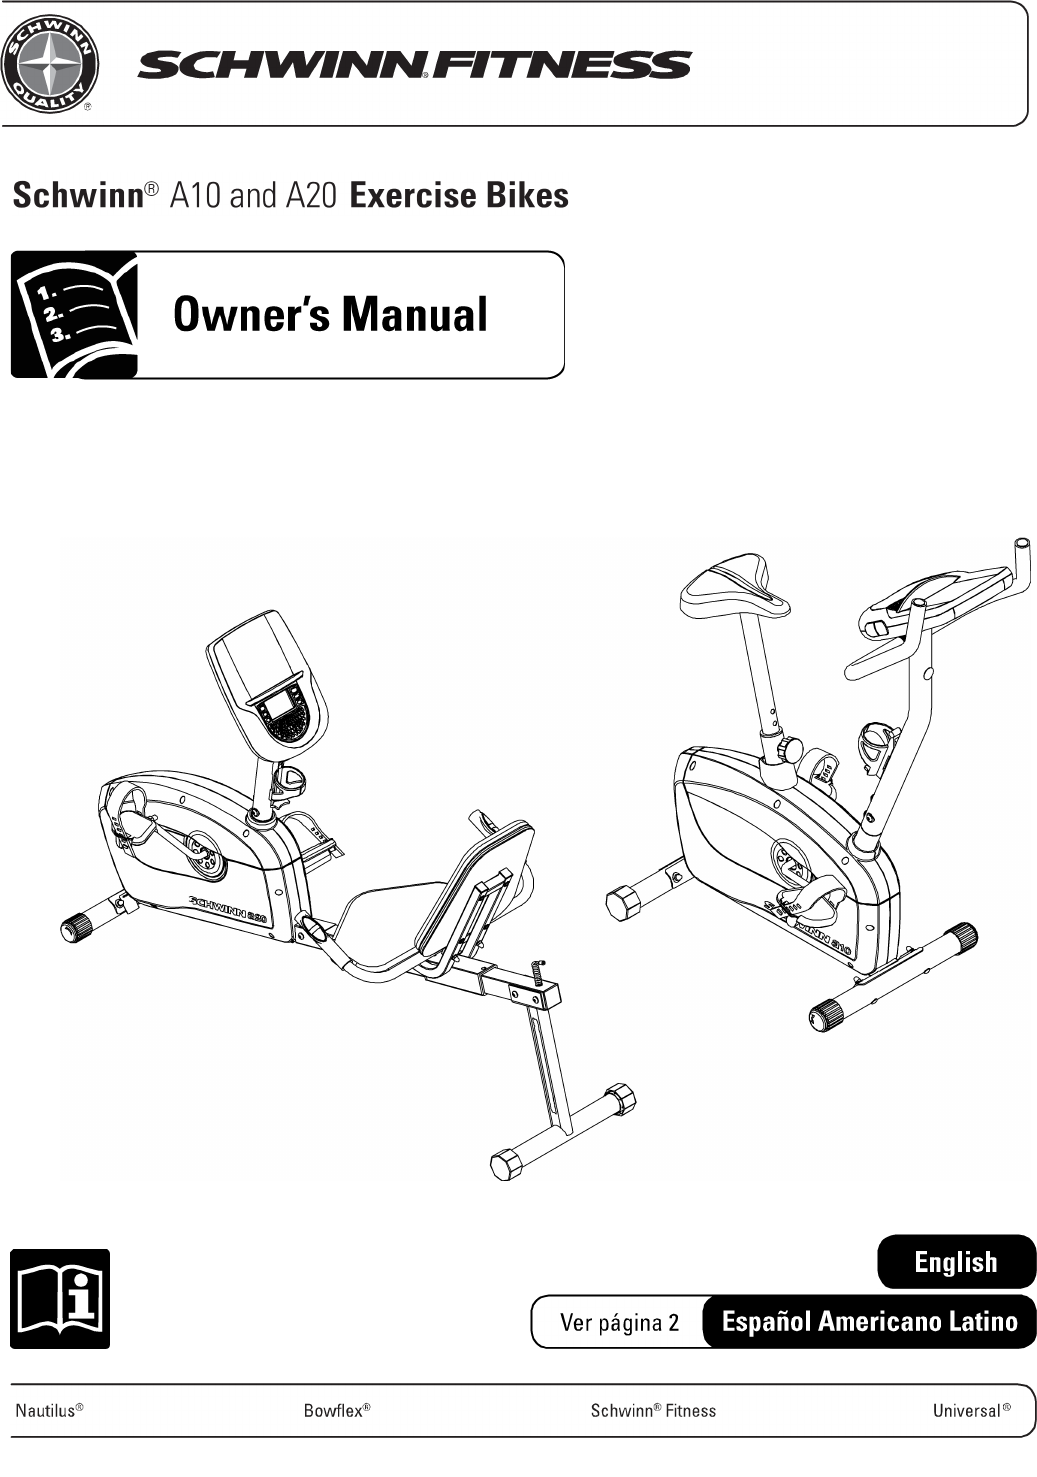 How do you get a manual for the Schwinn exercise bike?